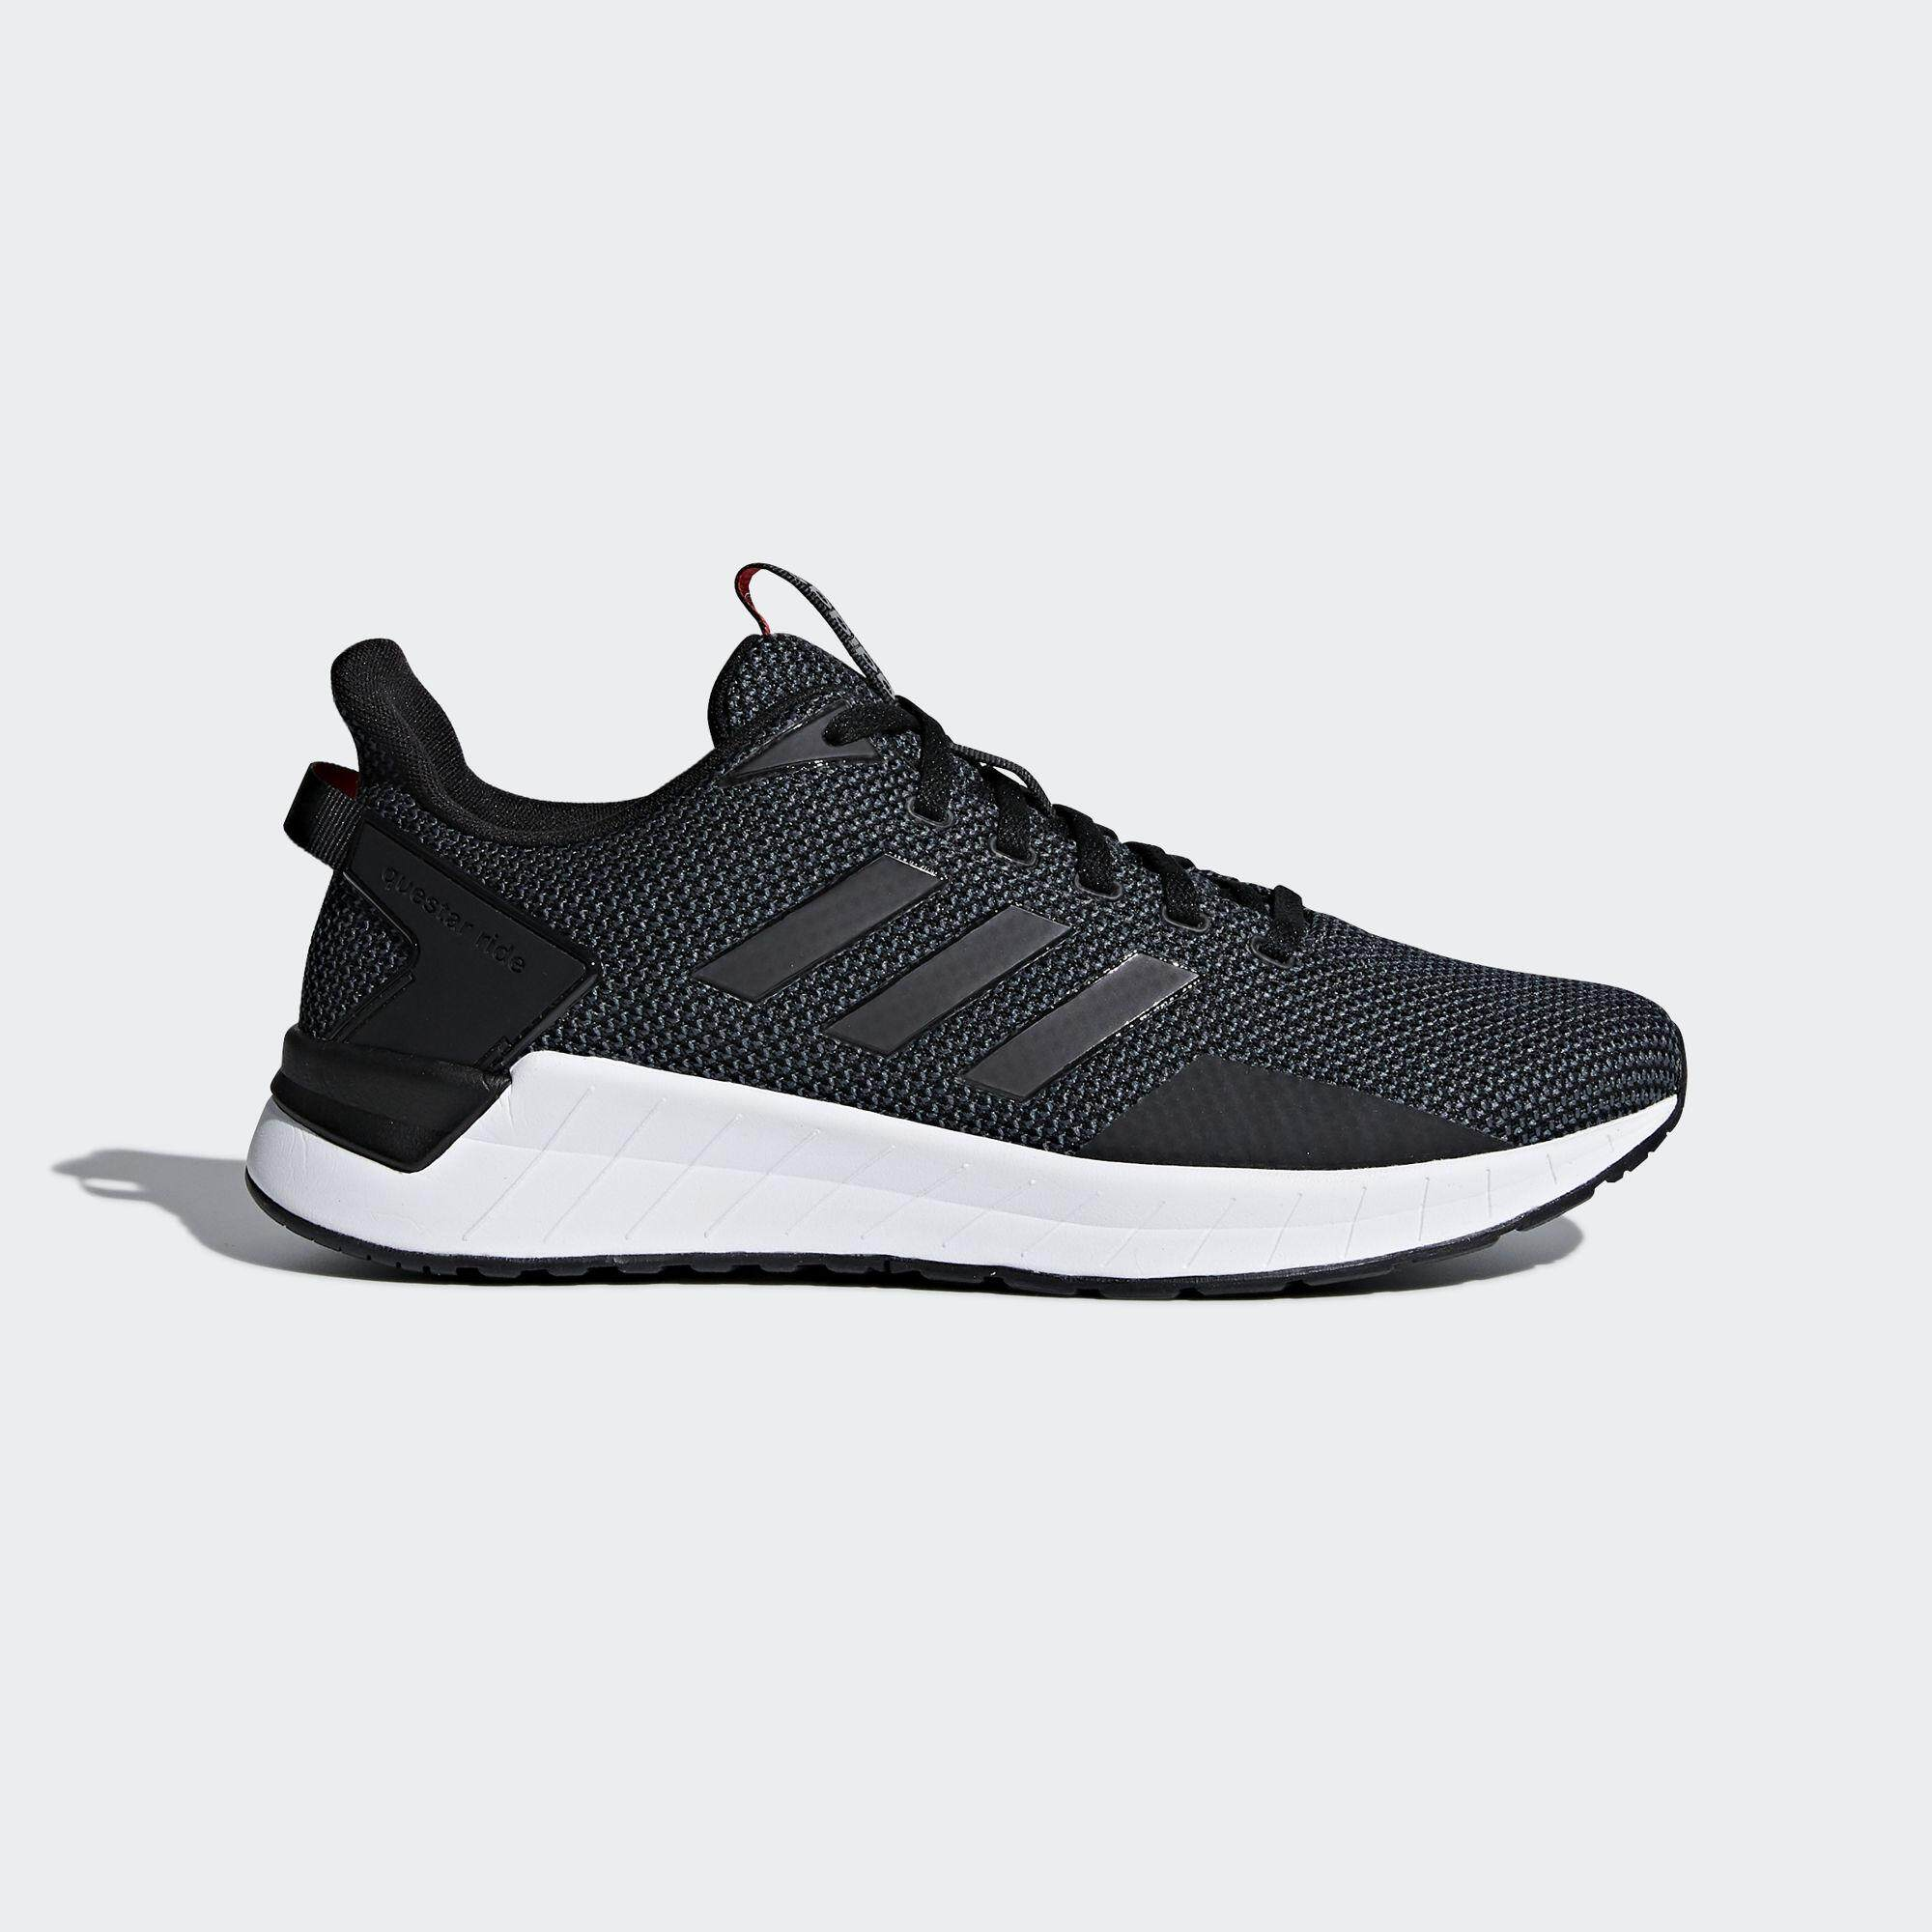 ราคา Adidas Questar Ride Shoes Db1369 Adidas Face ใหม่